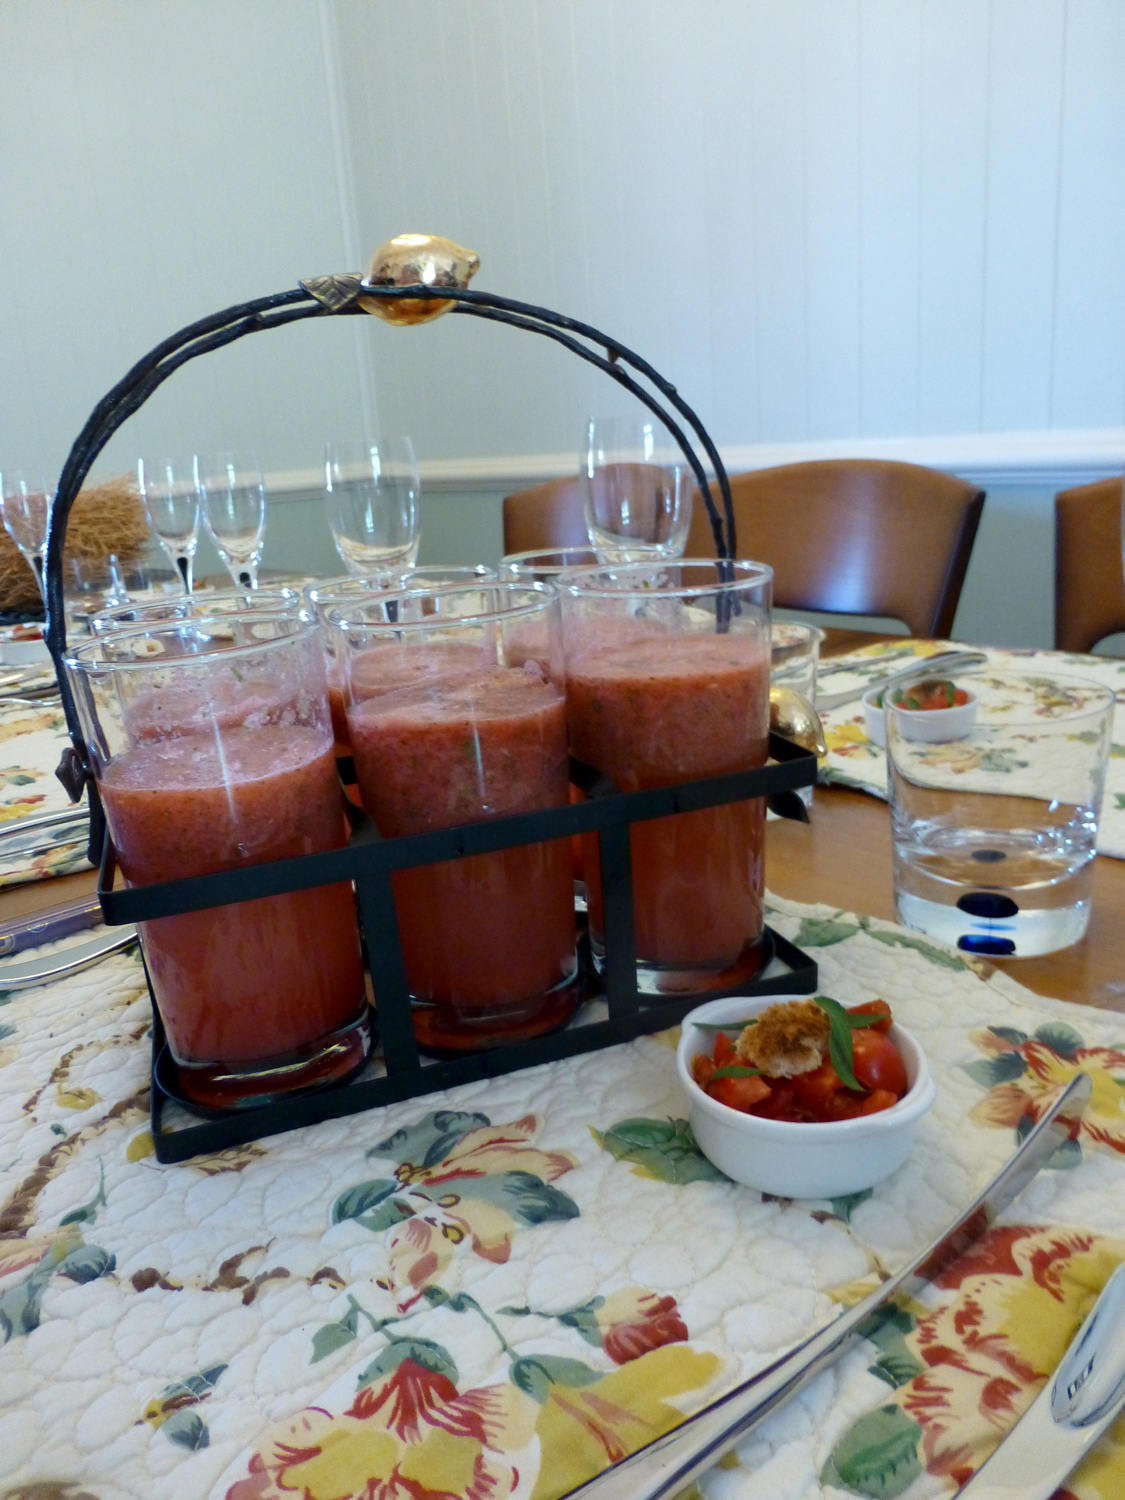 Watermelon and Mint Lemonade with antipasto appetiser.